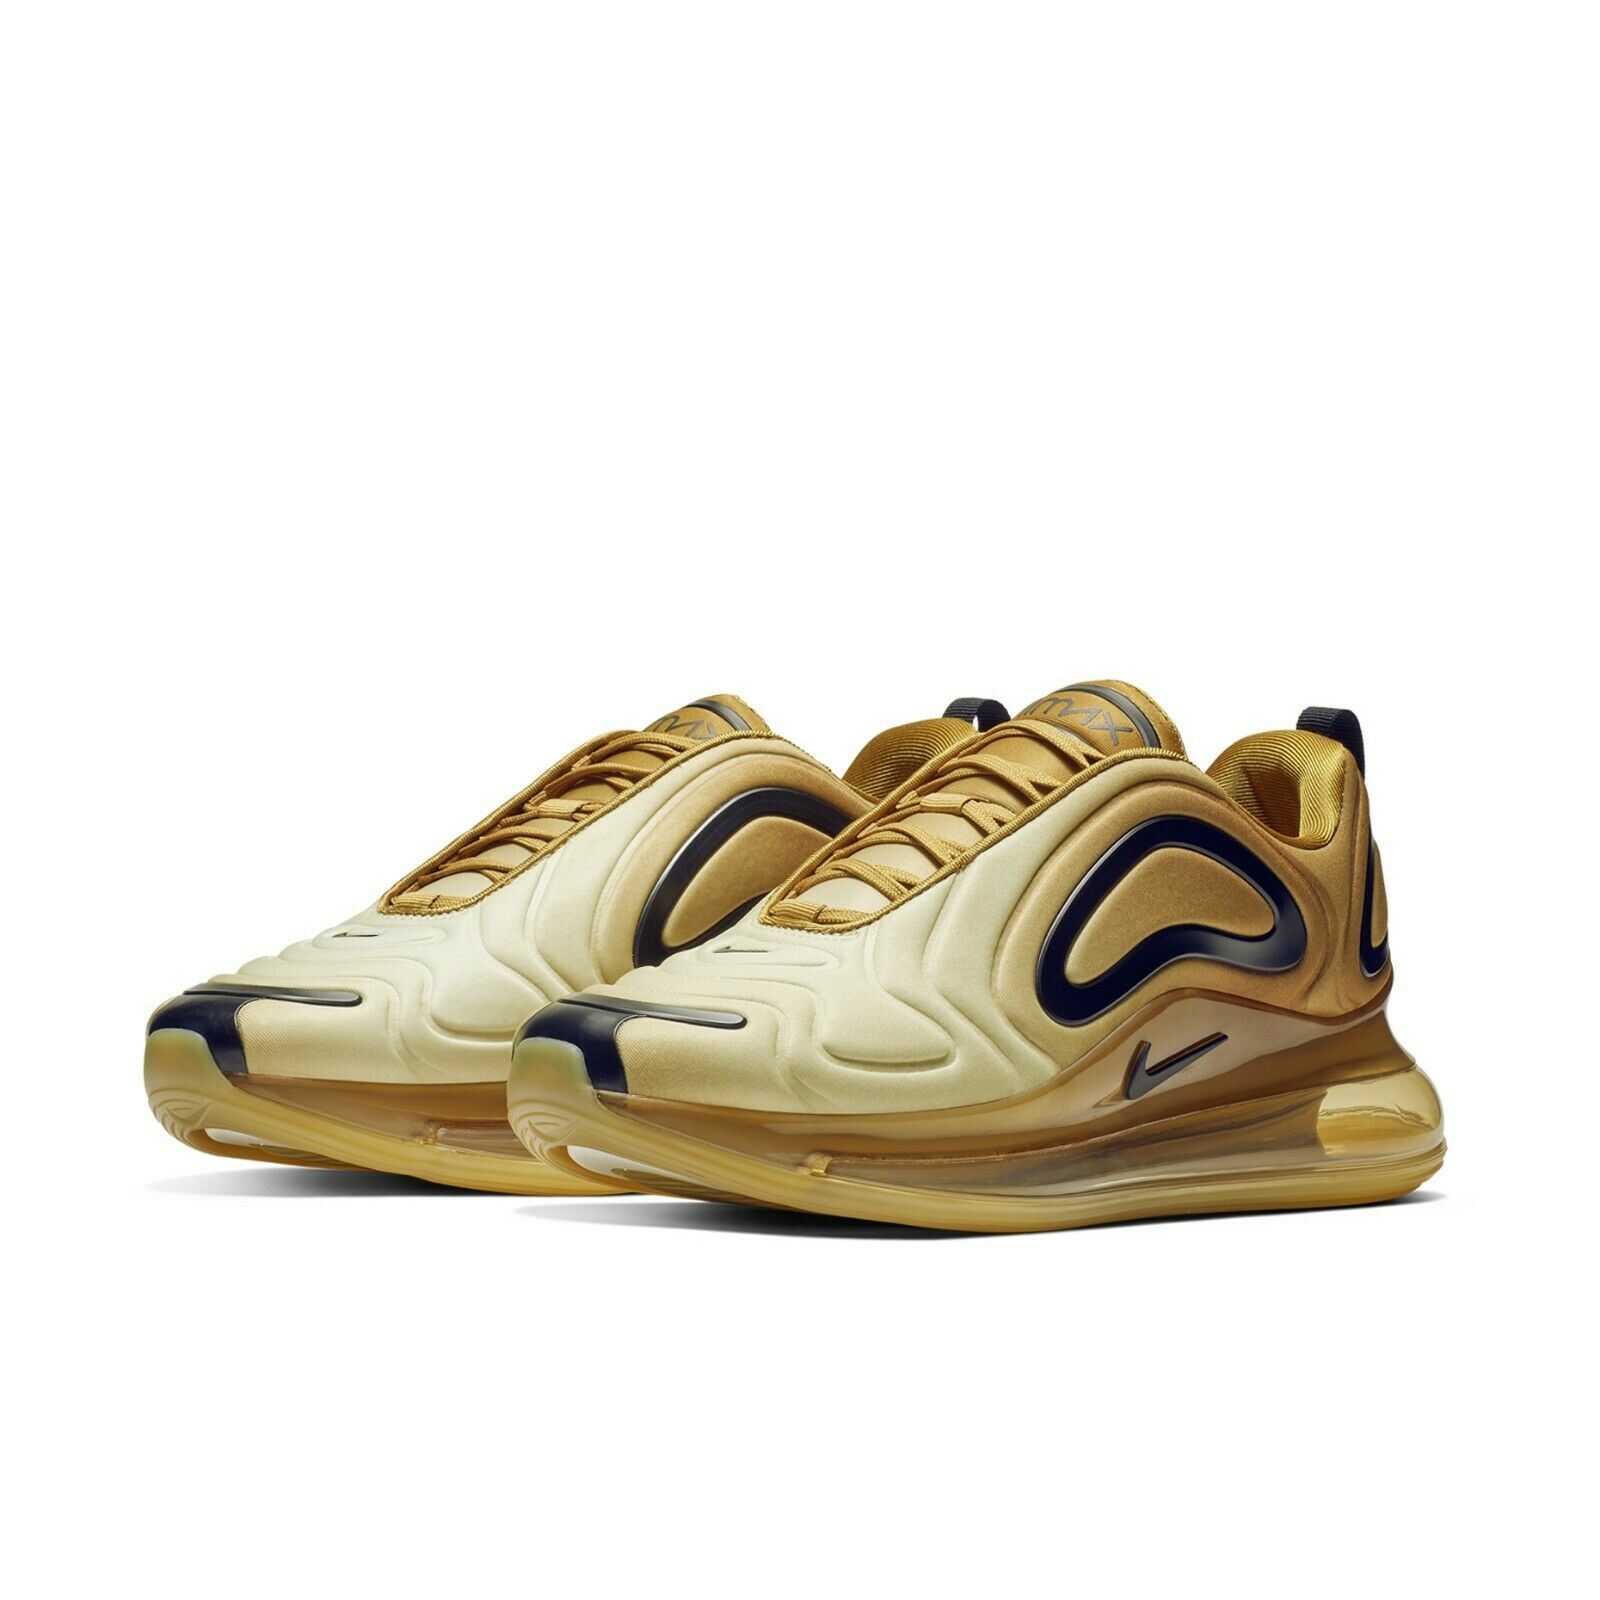 the best attitude c409a ab0d7 Nike Mens Air Max 720 Desert Gold Wheat Black Running Shoes Sneakers  AO2924-700